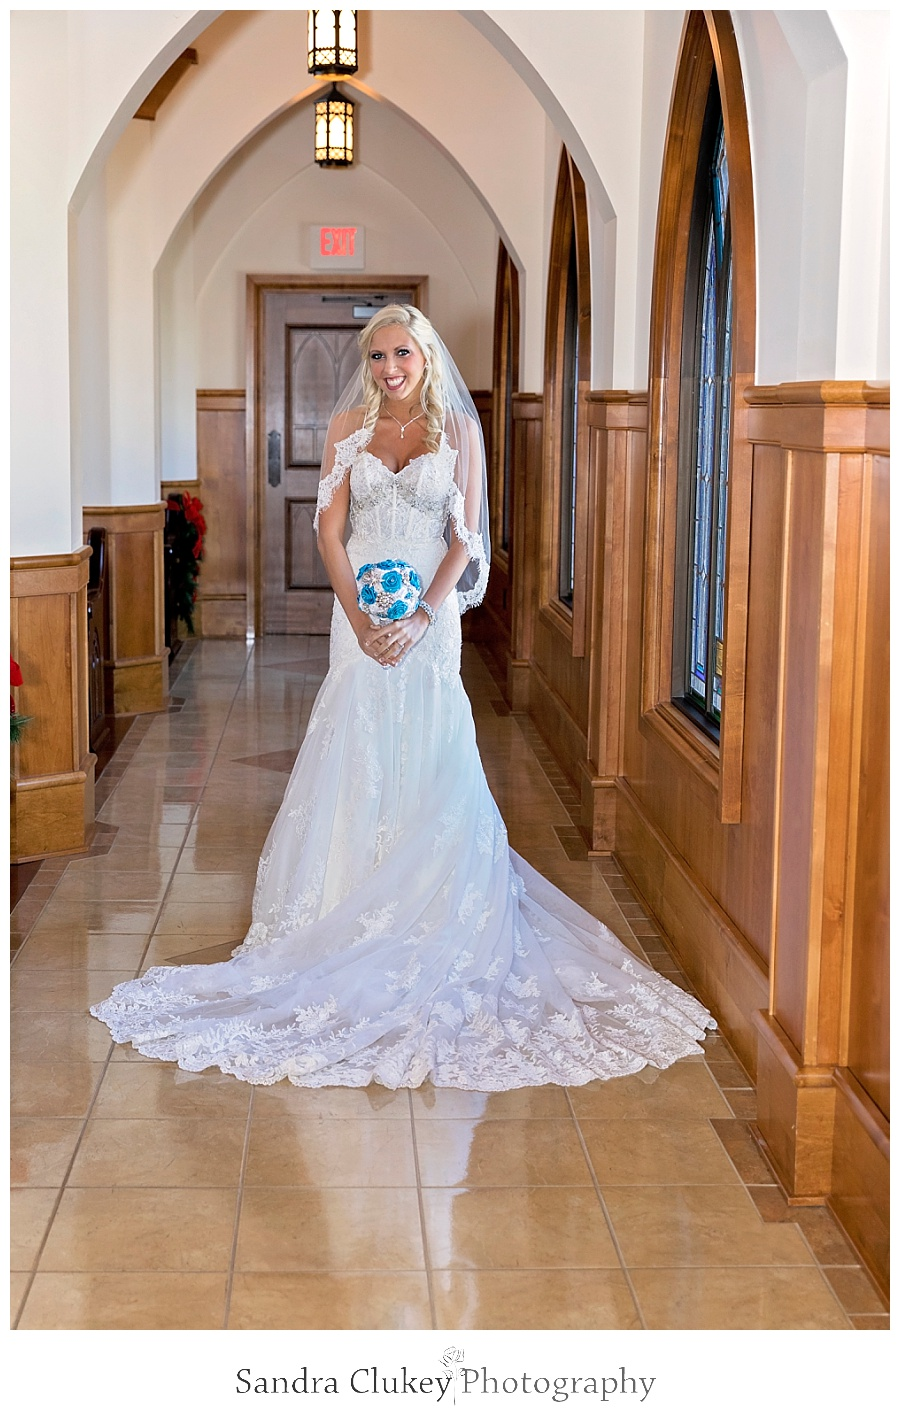 Dazzling bride in church aisle